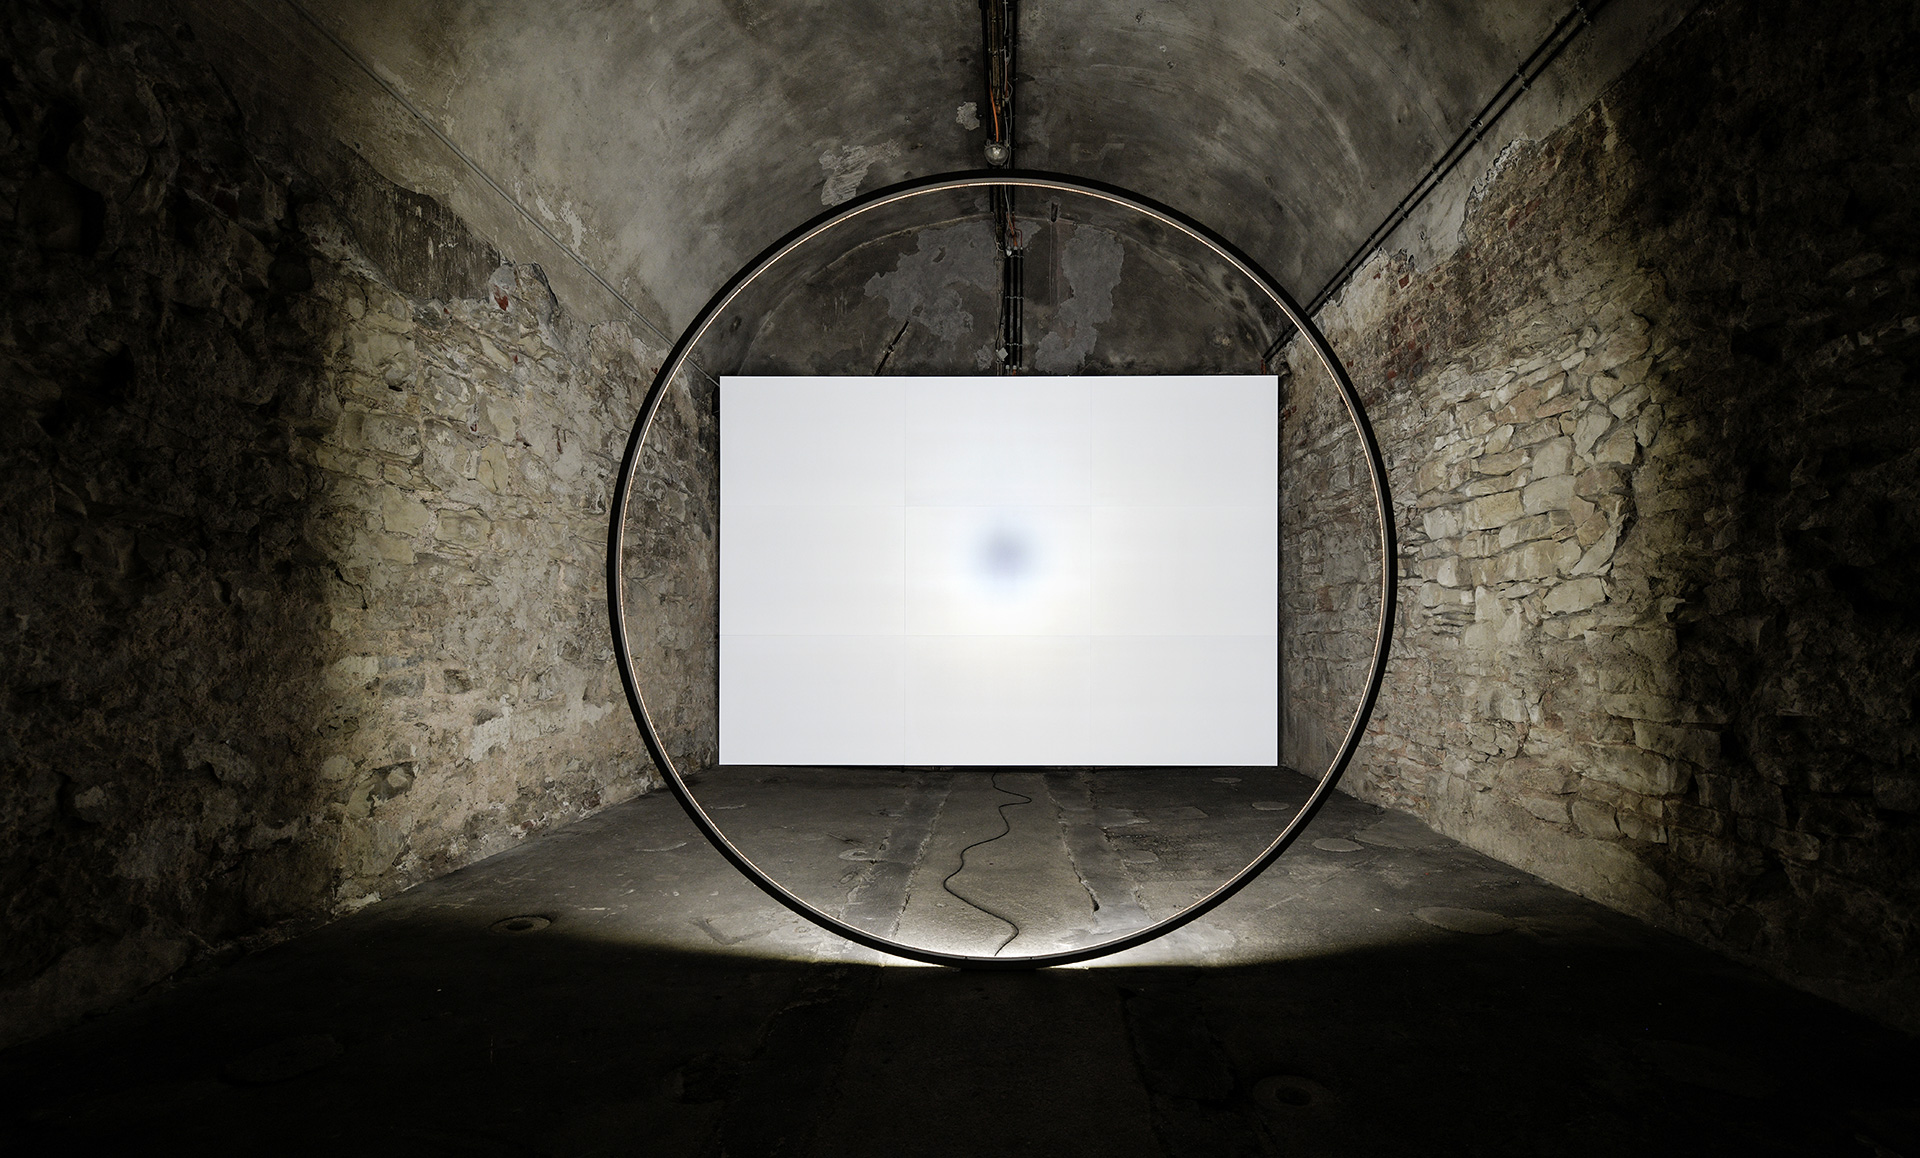 Dachroth + Jeschonnek, Negative Space of Light, 2019, International Light Art Award 2019 | Dachroth + Jeschonnek | STIRworld